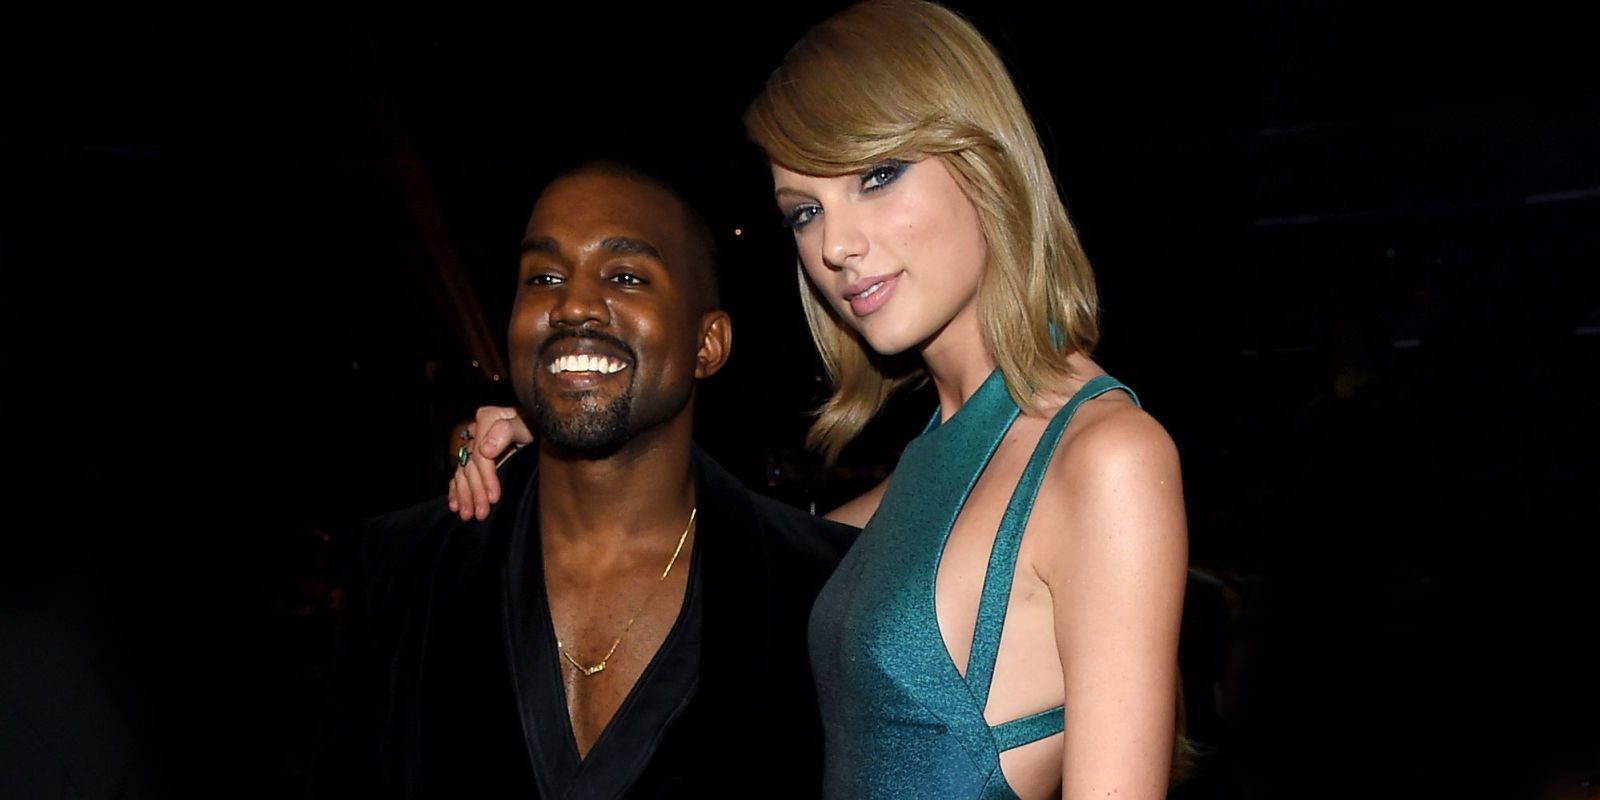 Taylor Swift And Kanye West Are Making Music Together Taylor Swift Kanye West Kanye West Kim Kardashian And Kanye